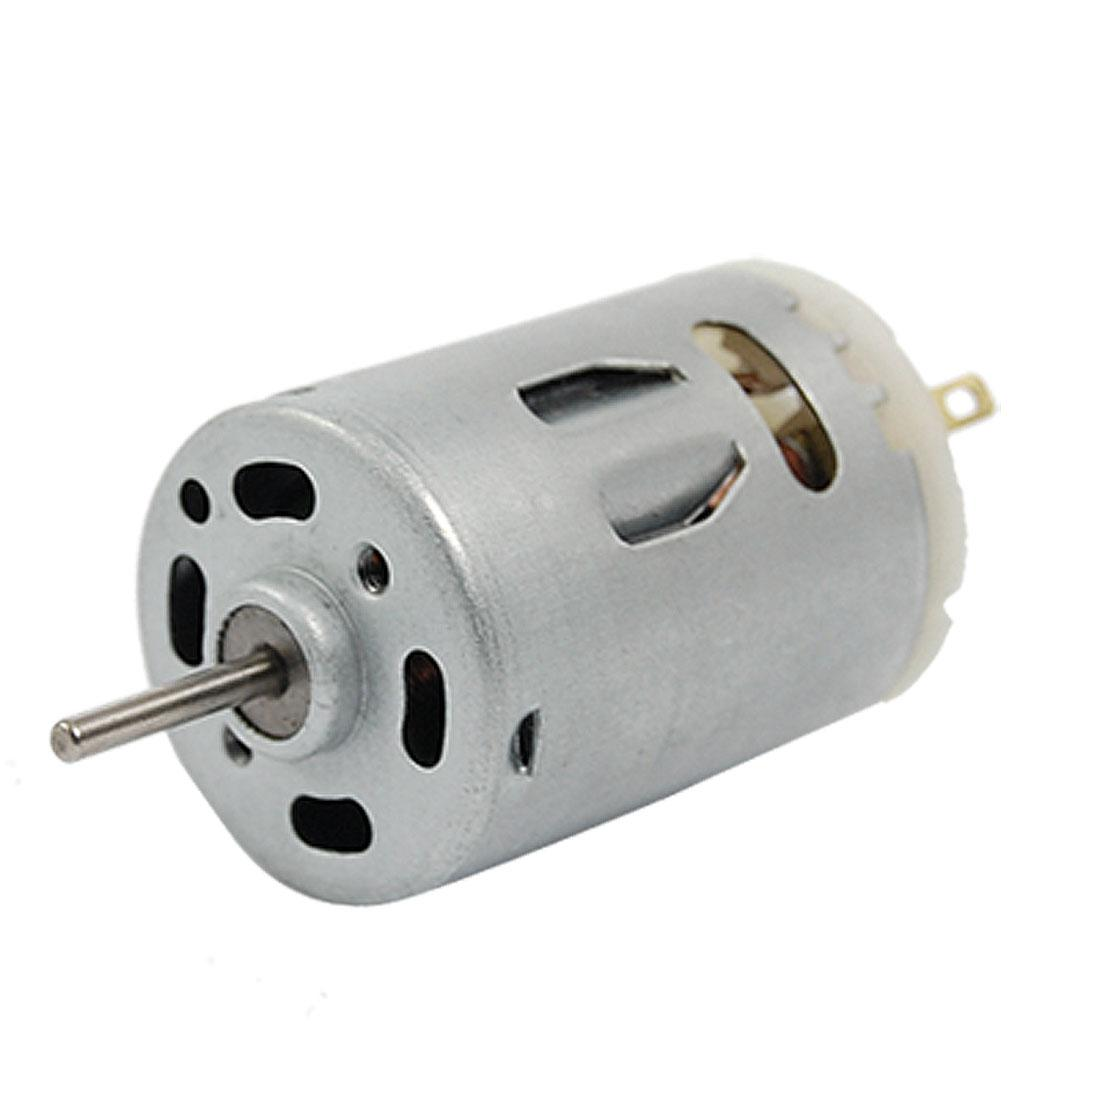 Online cheap dc 12v 10000rpm mini electric motor for for 10000 rpm dc motor